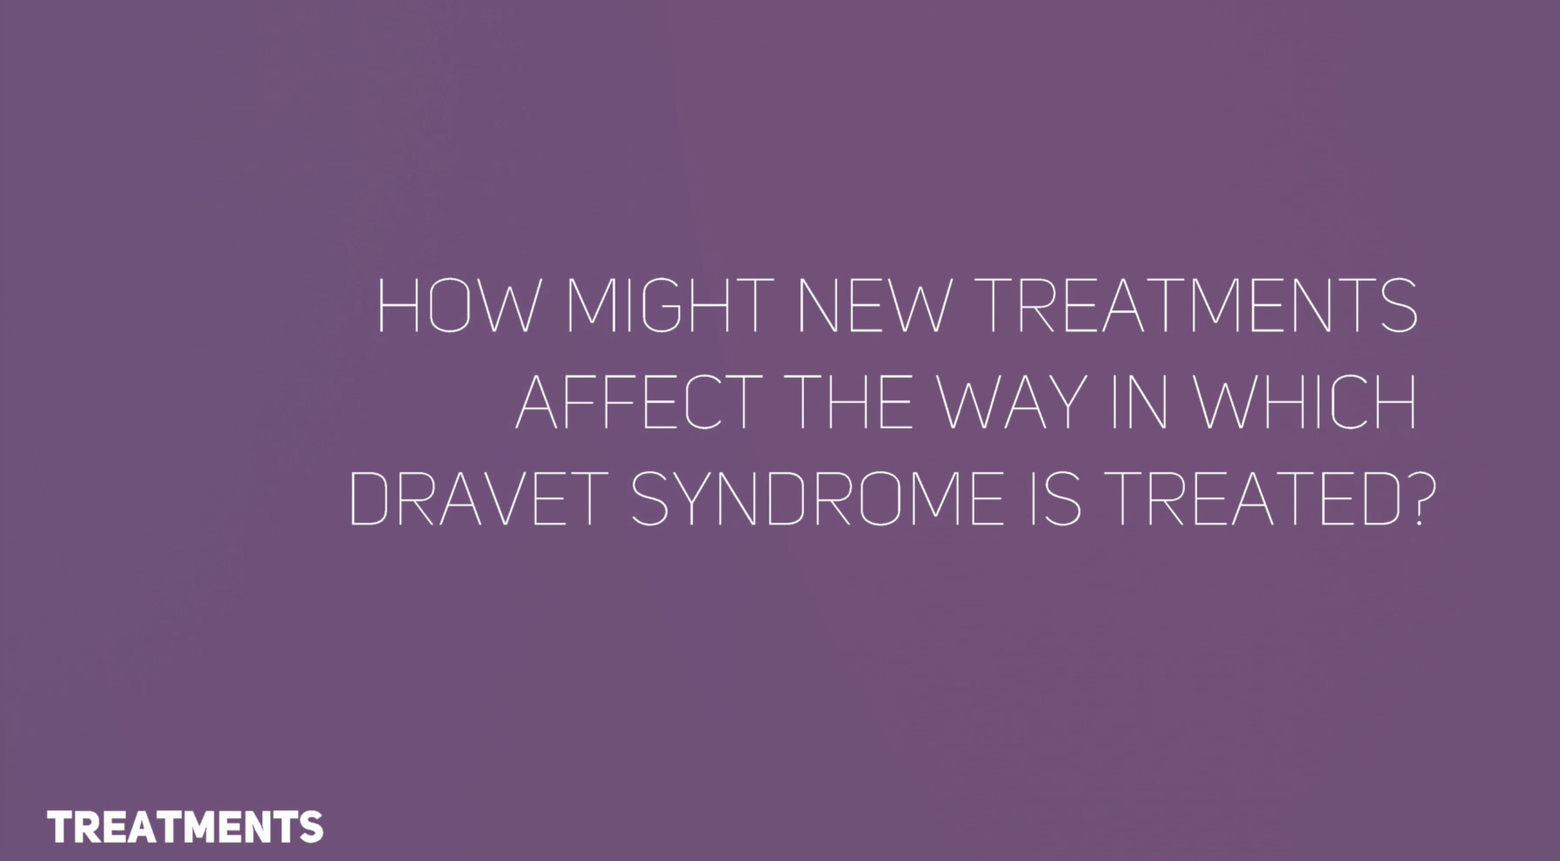 Future approaches to Dravet Syndrome